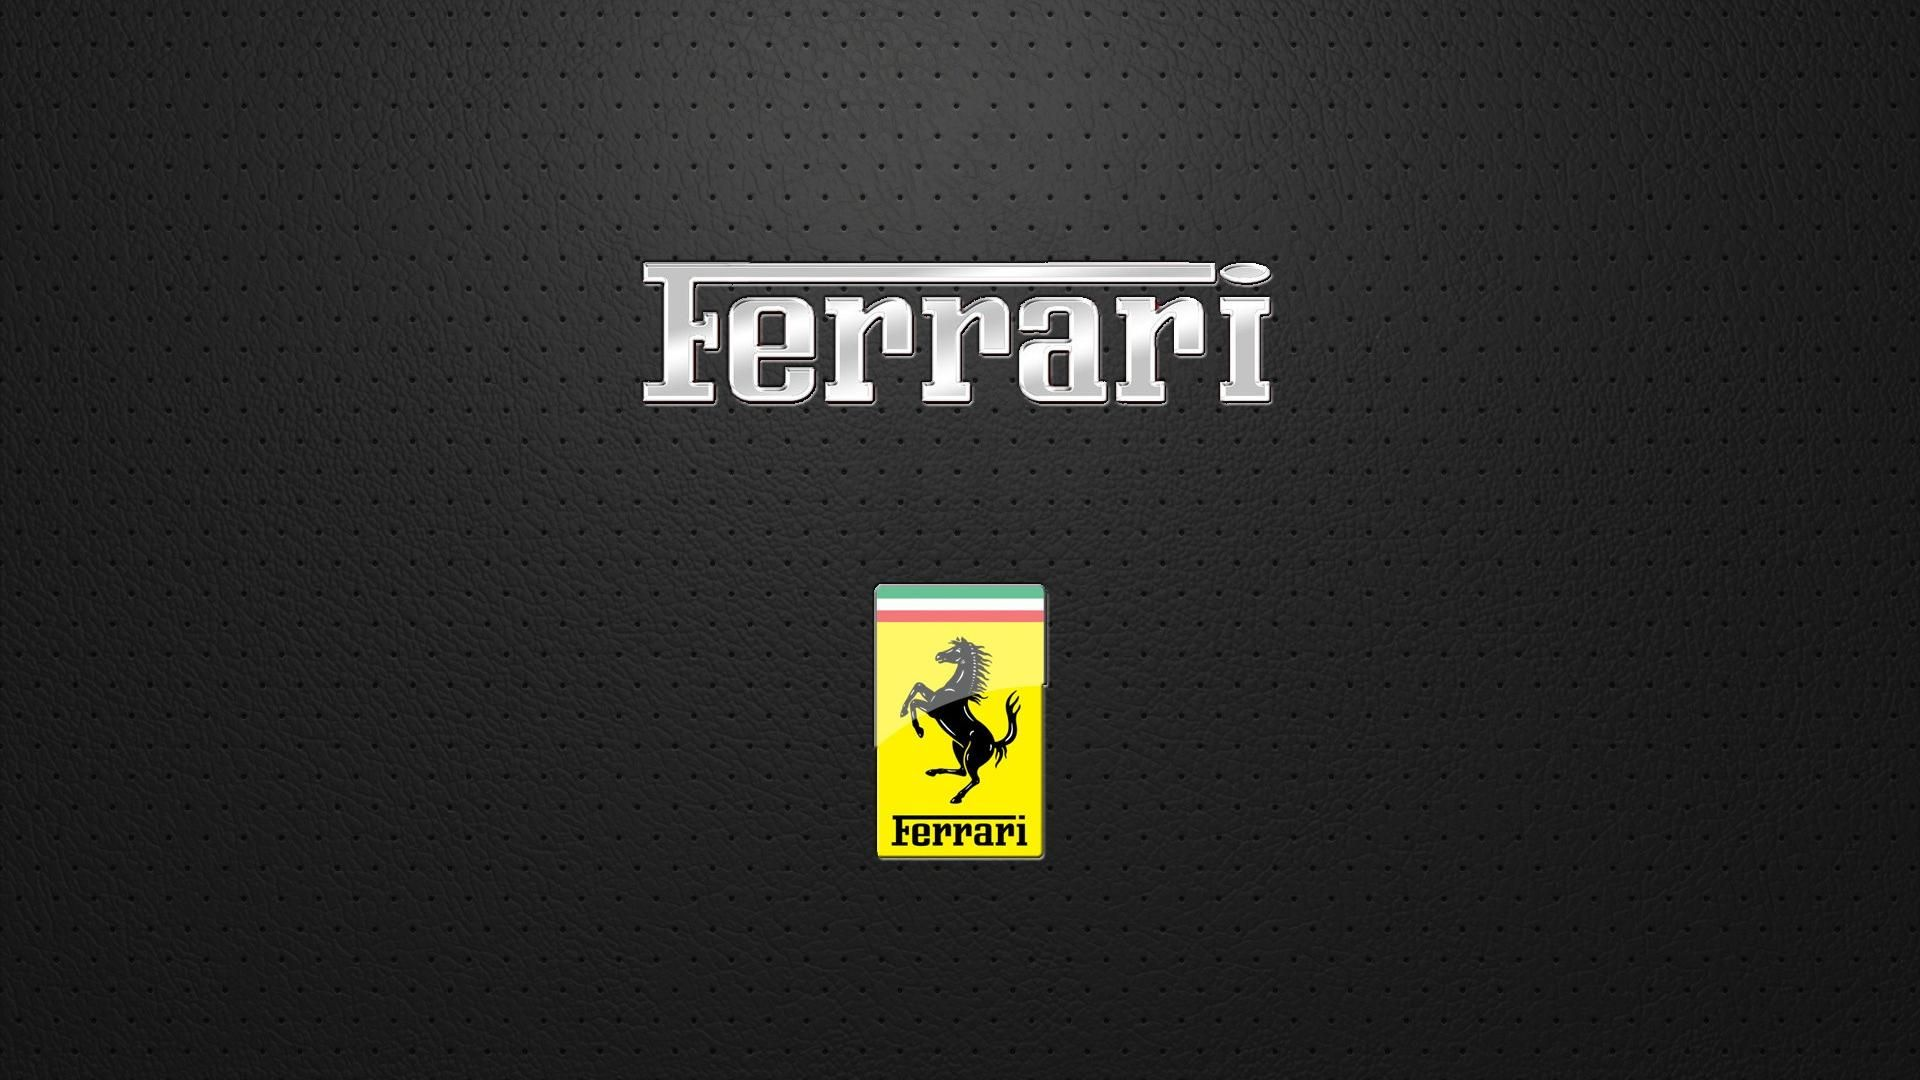 cool ferrari wallpapers, ferarri backgrounds